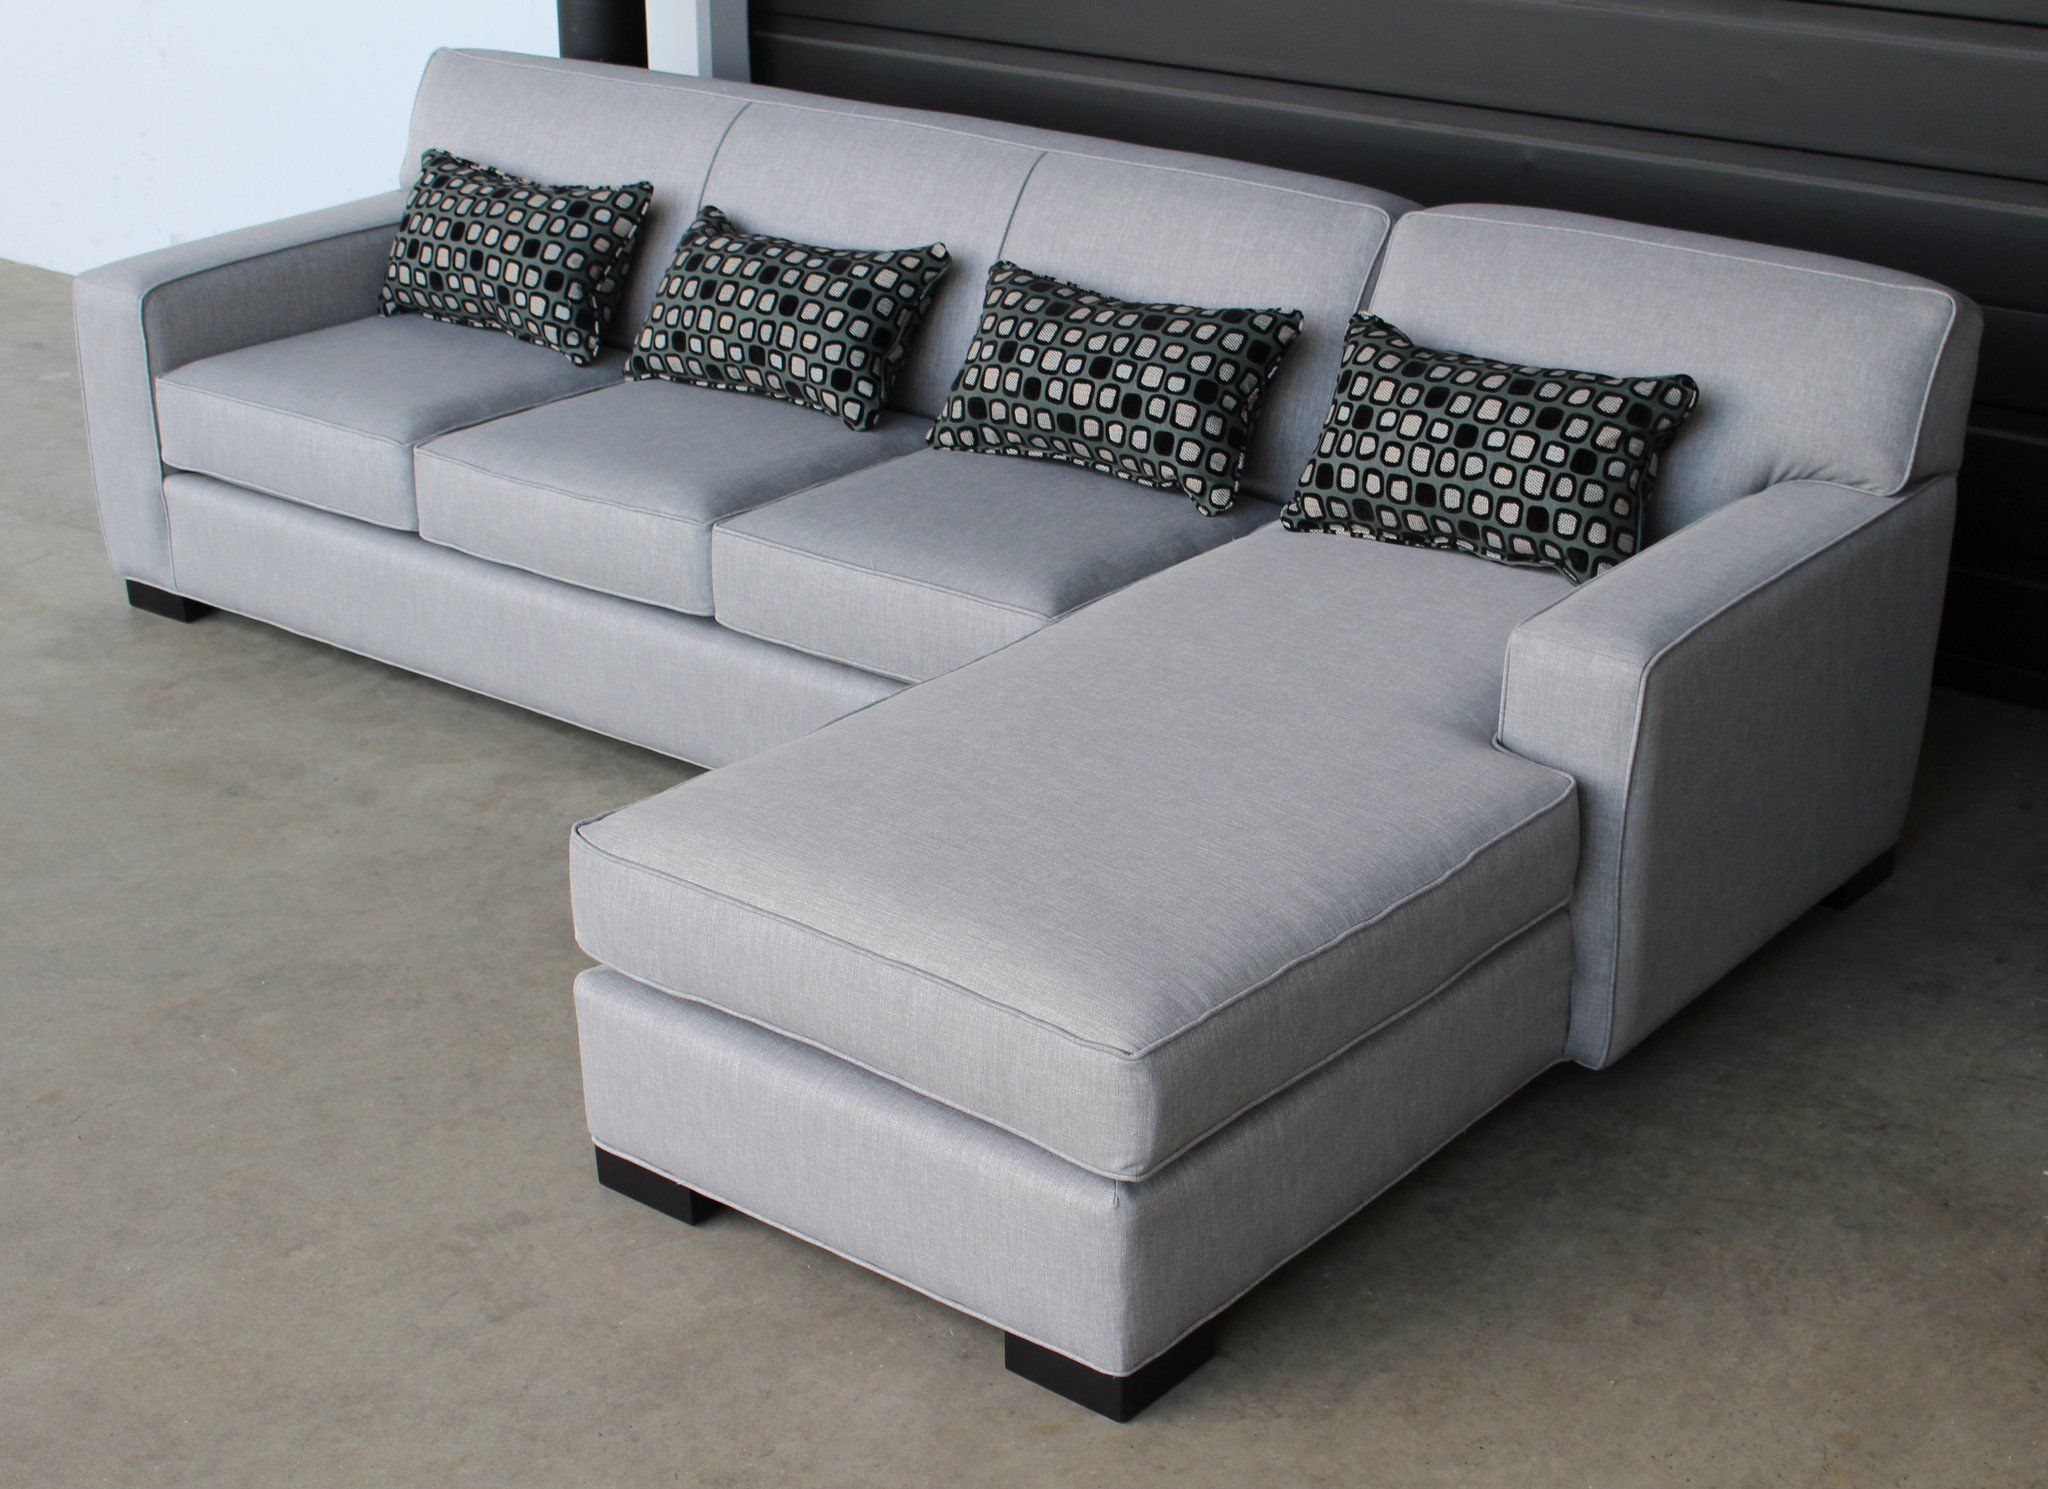 Arsenio Sofa Chaise Sectional - Made in Canada – Showhome Furniture